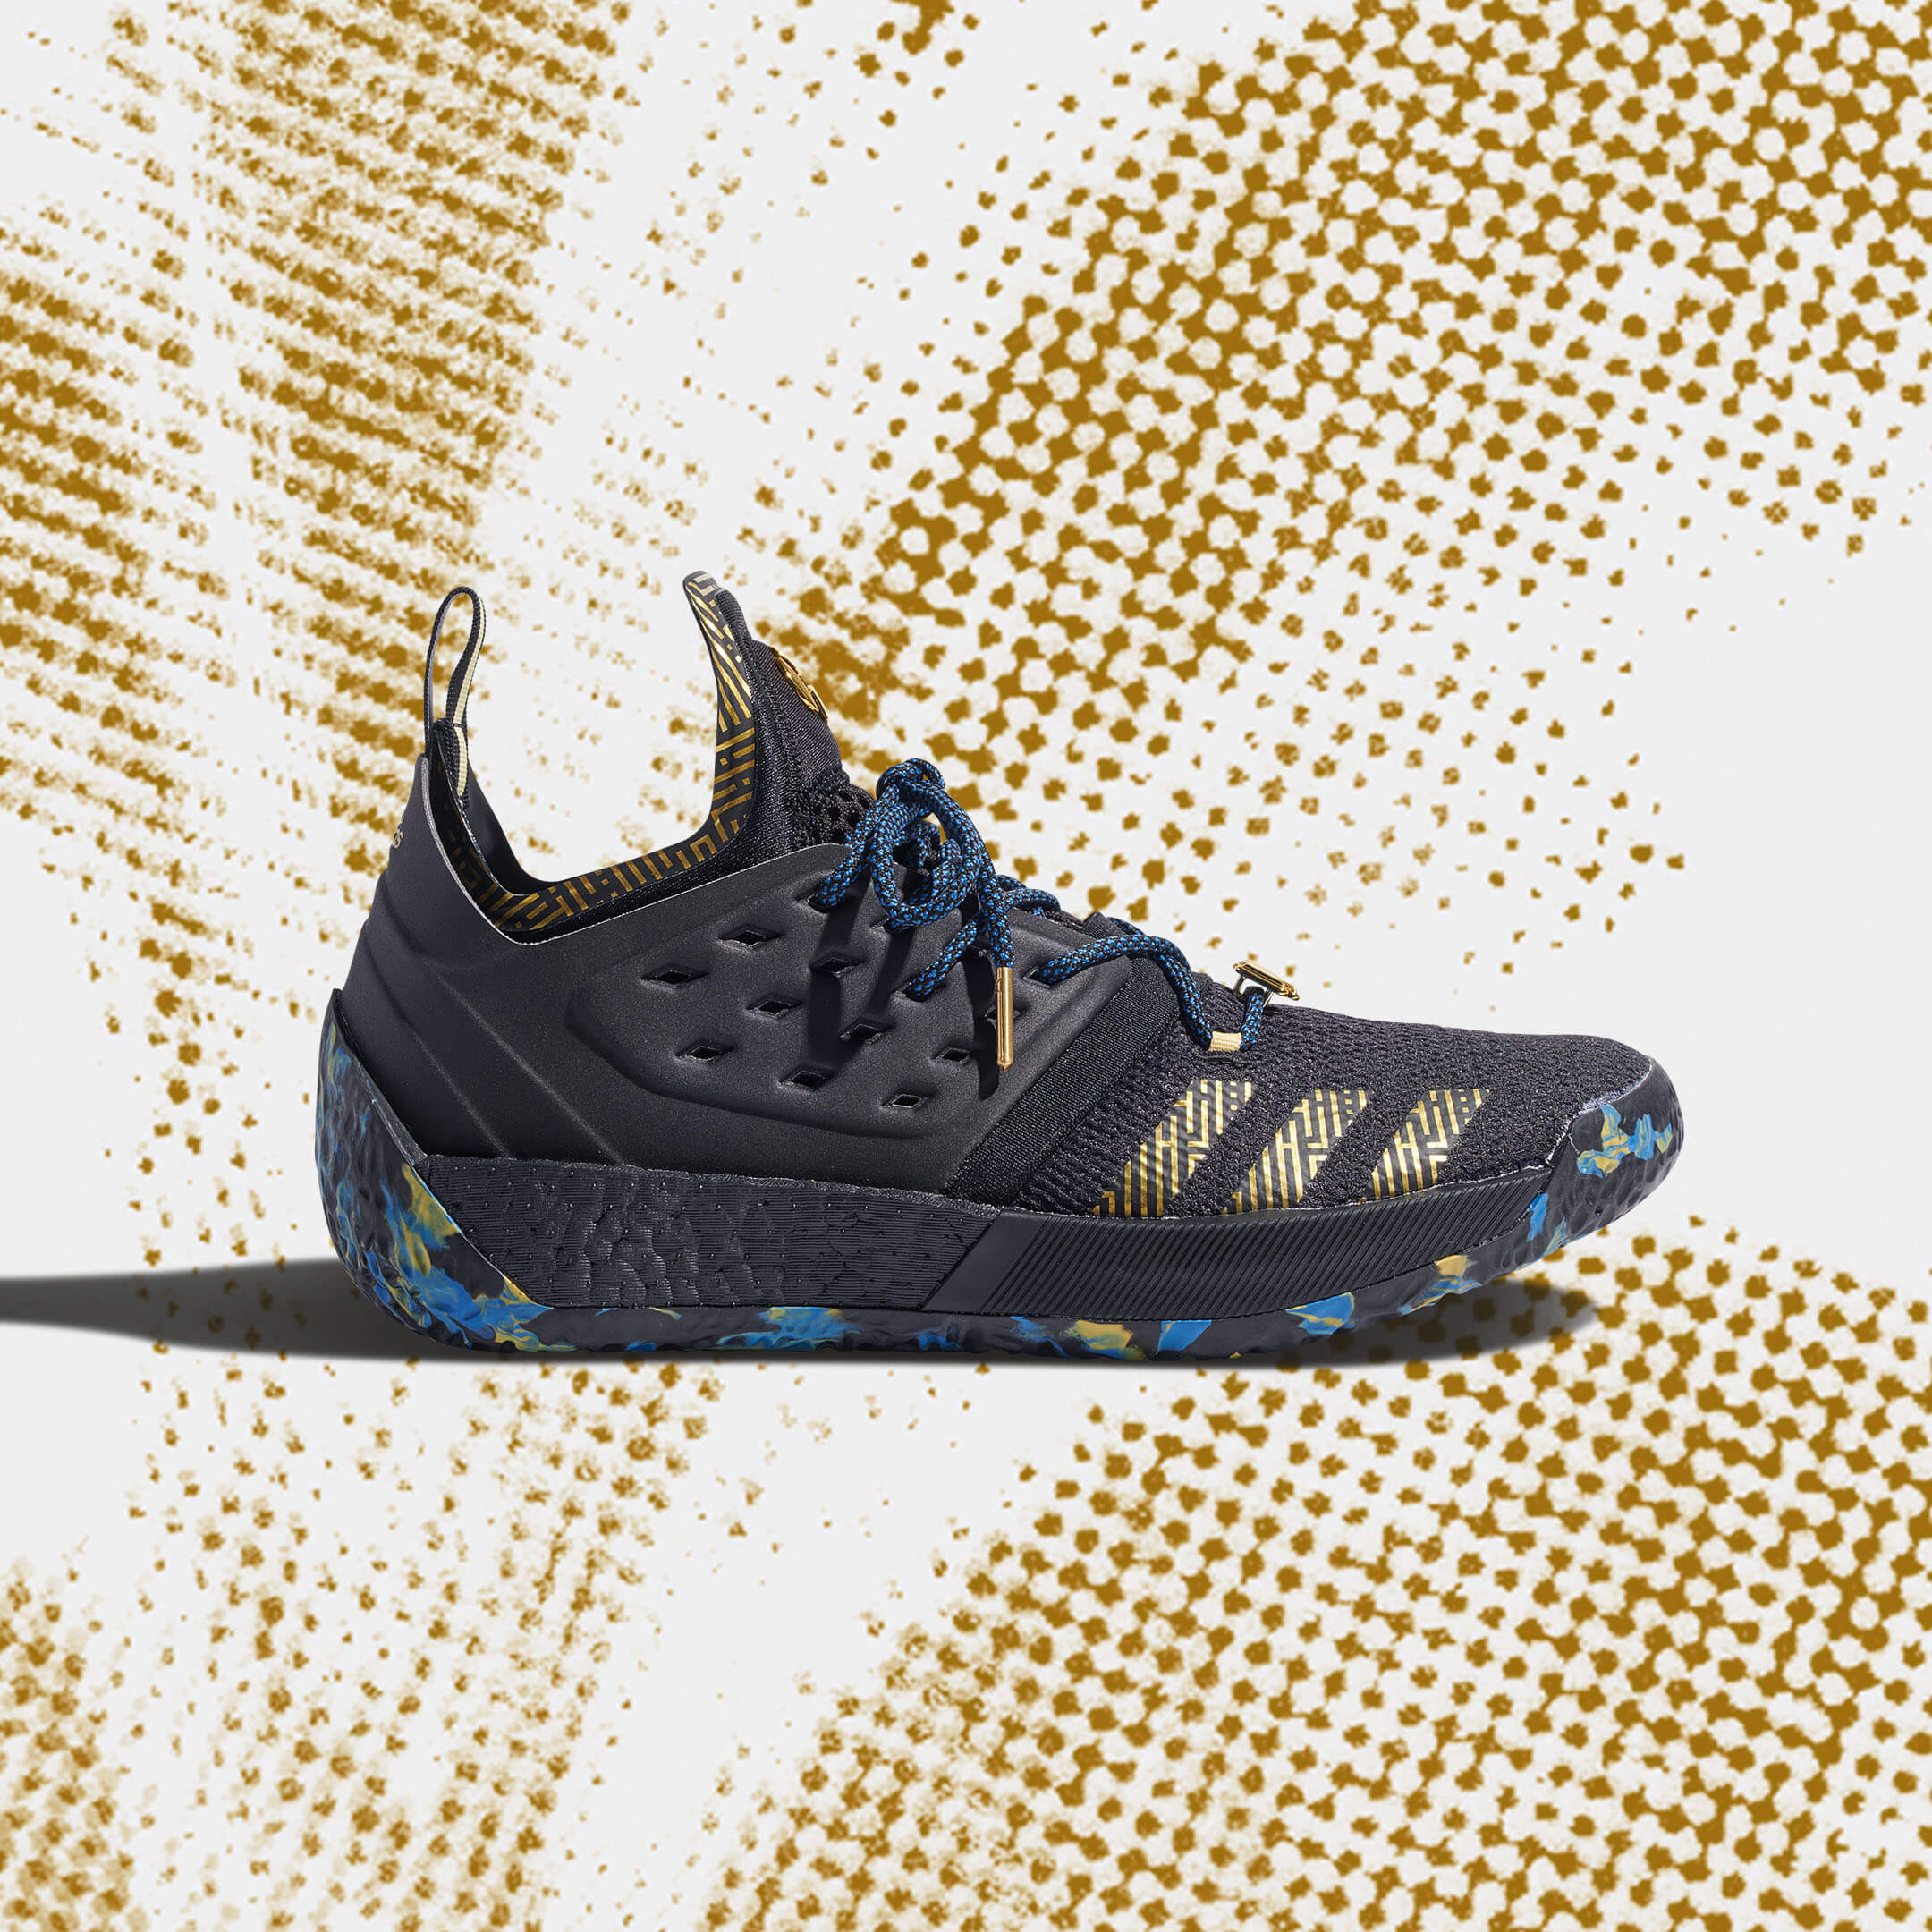 LOOK: adidas shows love to the new MVP with a Special Edition Harden Vol. 2